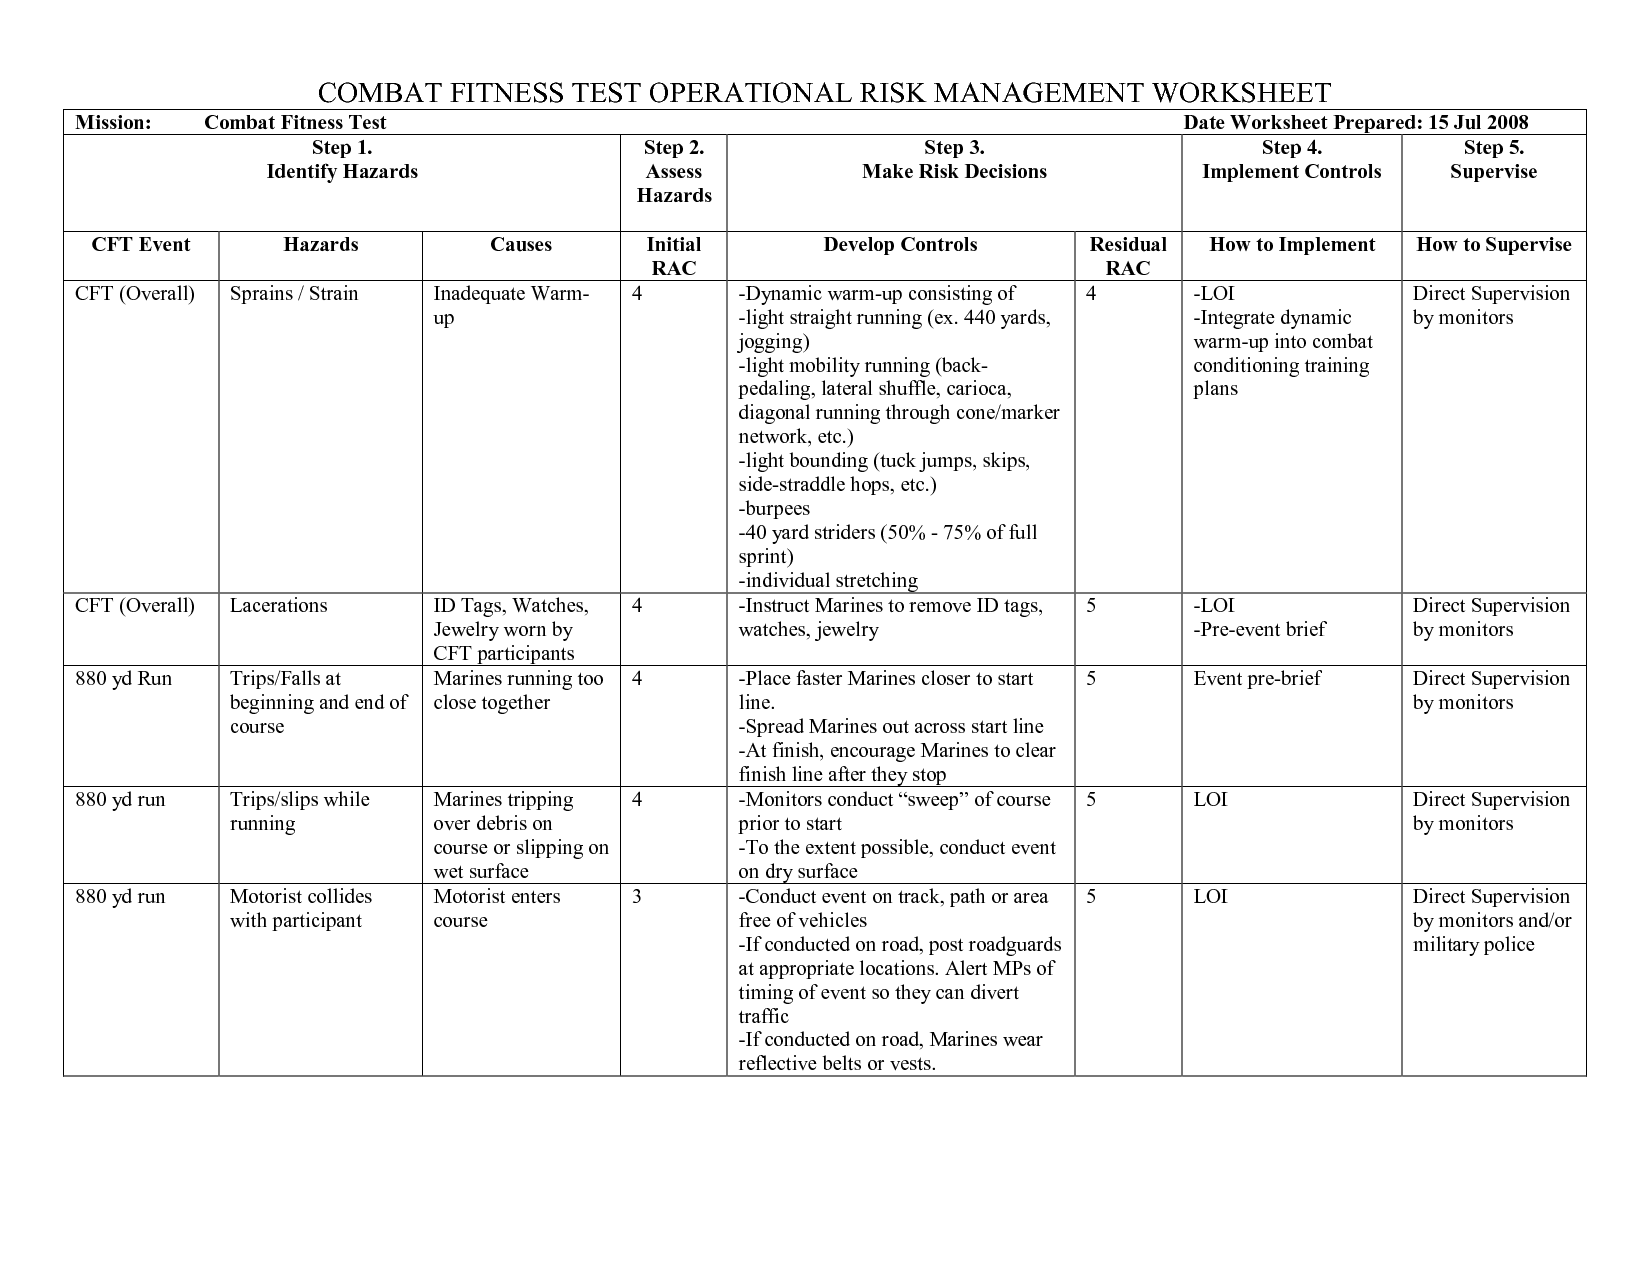 Operational Risk Management Worksheet Pictures To Pin